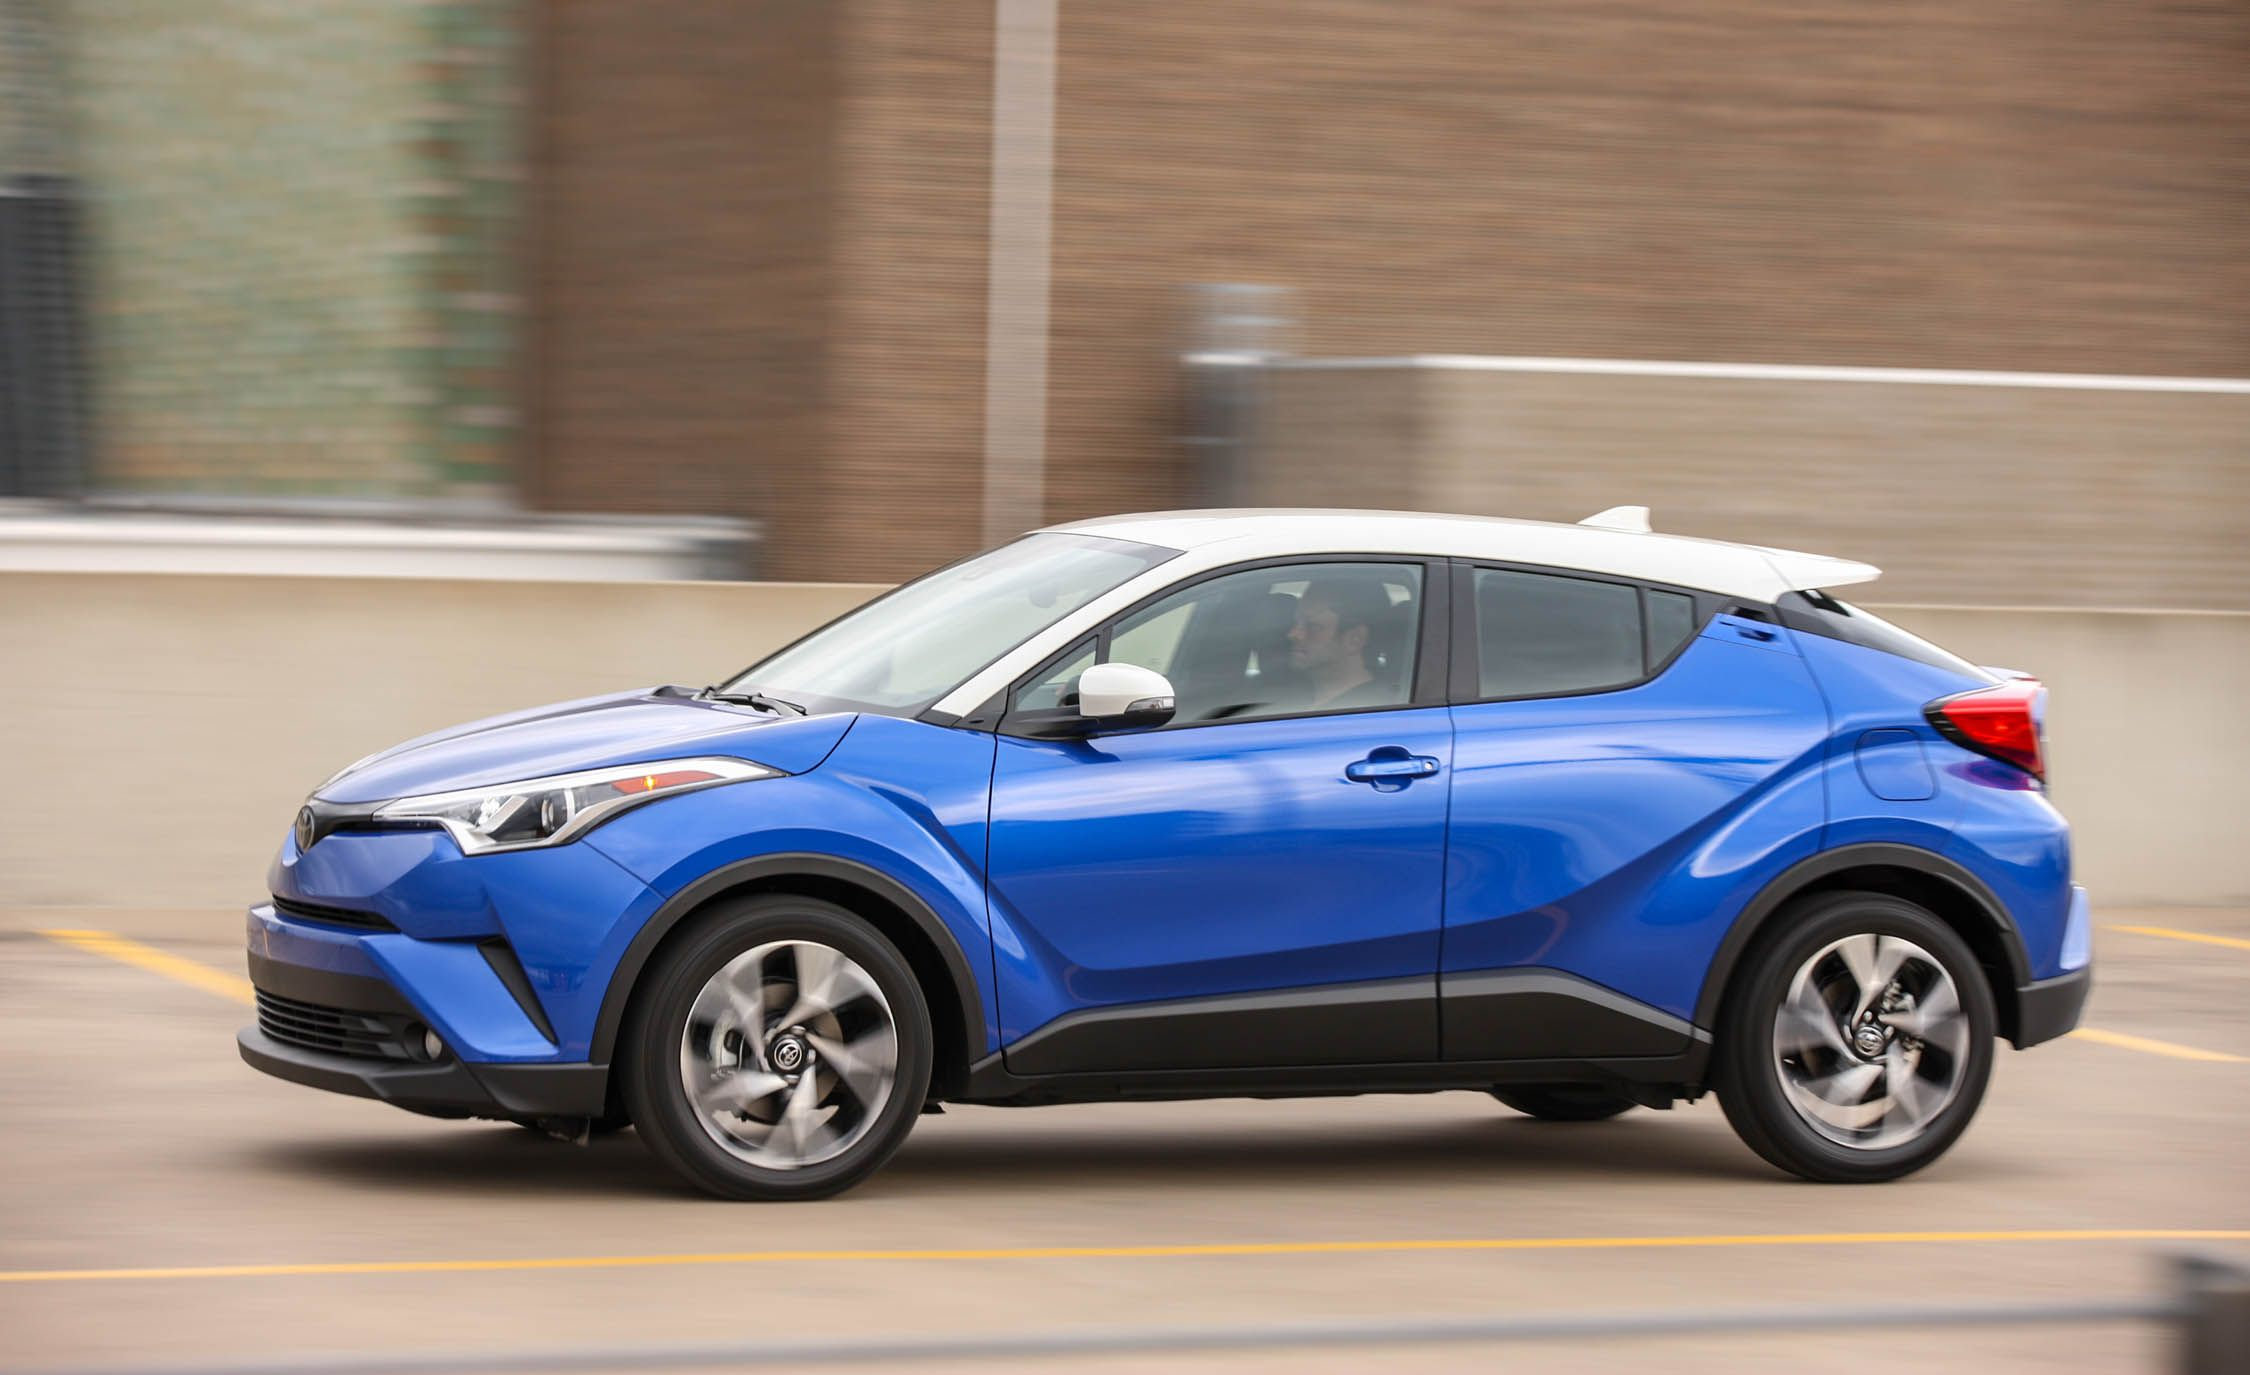 Car seating capacity compact crossover cars toyota cars toyota chr - Car Seating Capacity Compact Crossover Cars Toyota Cars Toyota Chr 29